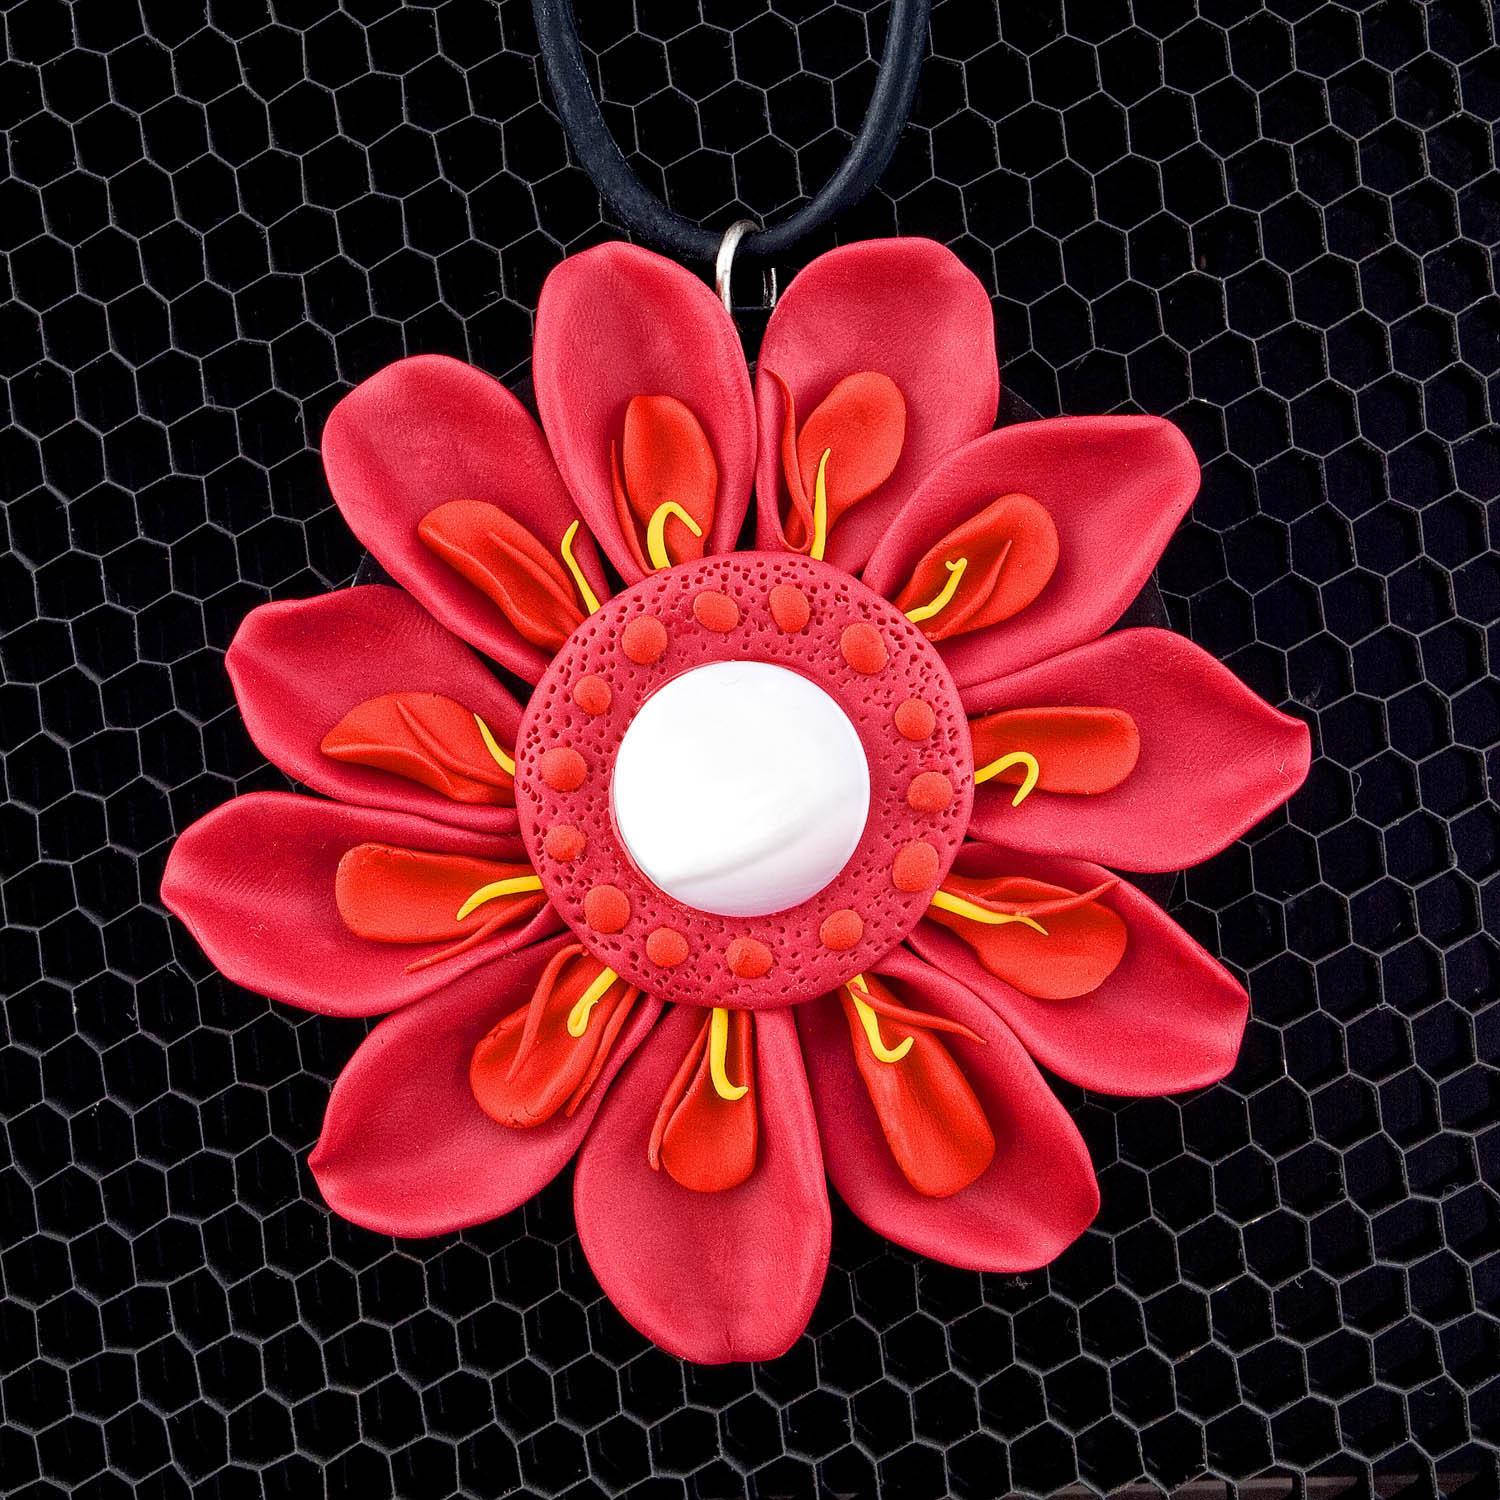 Scarlet's spring pendant - sterling silver, copper, polymer, mother-of-pearl. Thanks to Stephen Bennett for the awesome photo.